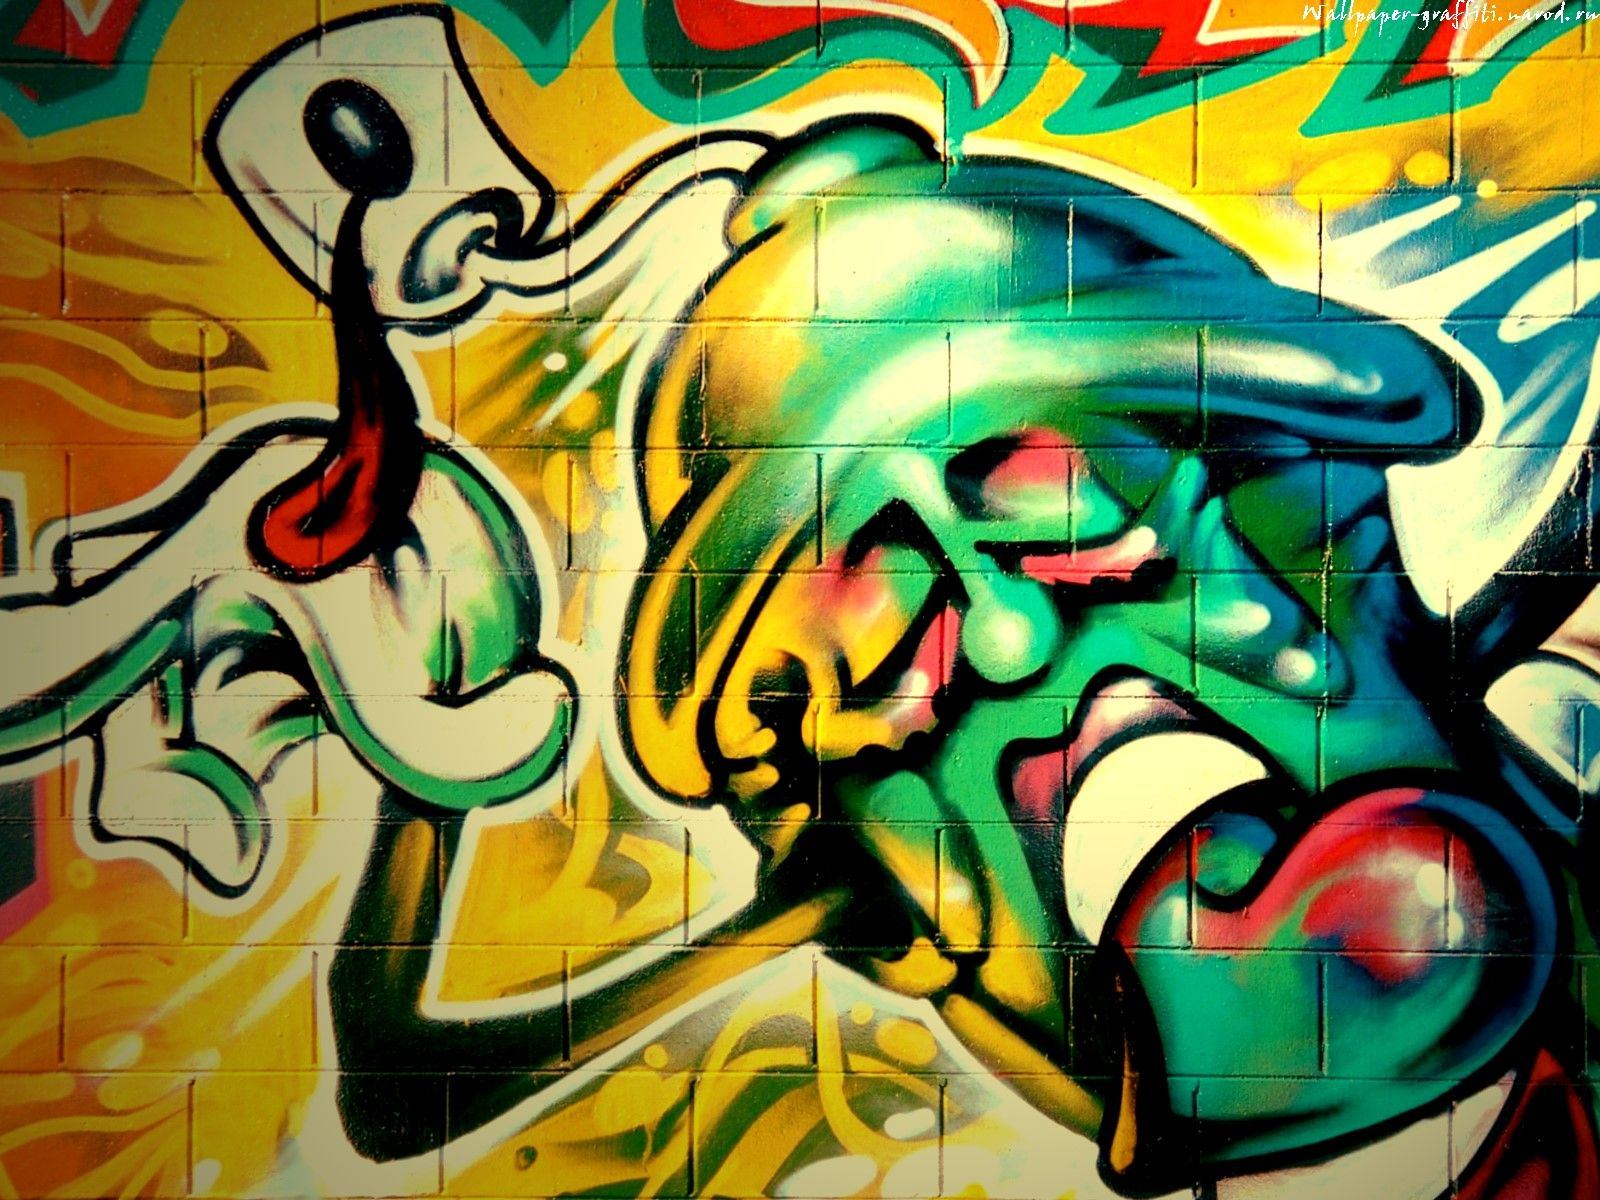 Download Free Graffiti Wallpaper Images For Laptop Desktops HD - Amazing graffiti alters perspective space